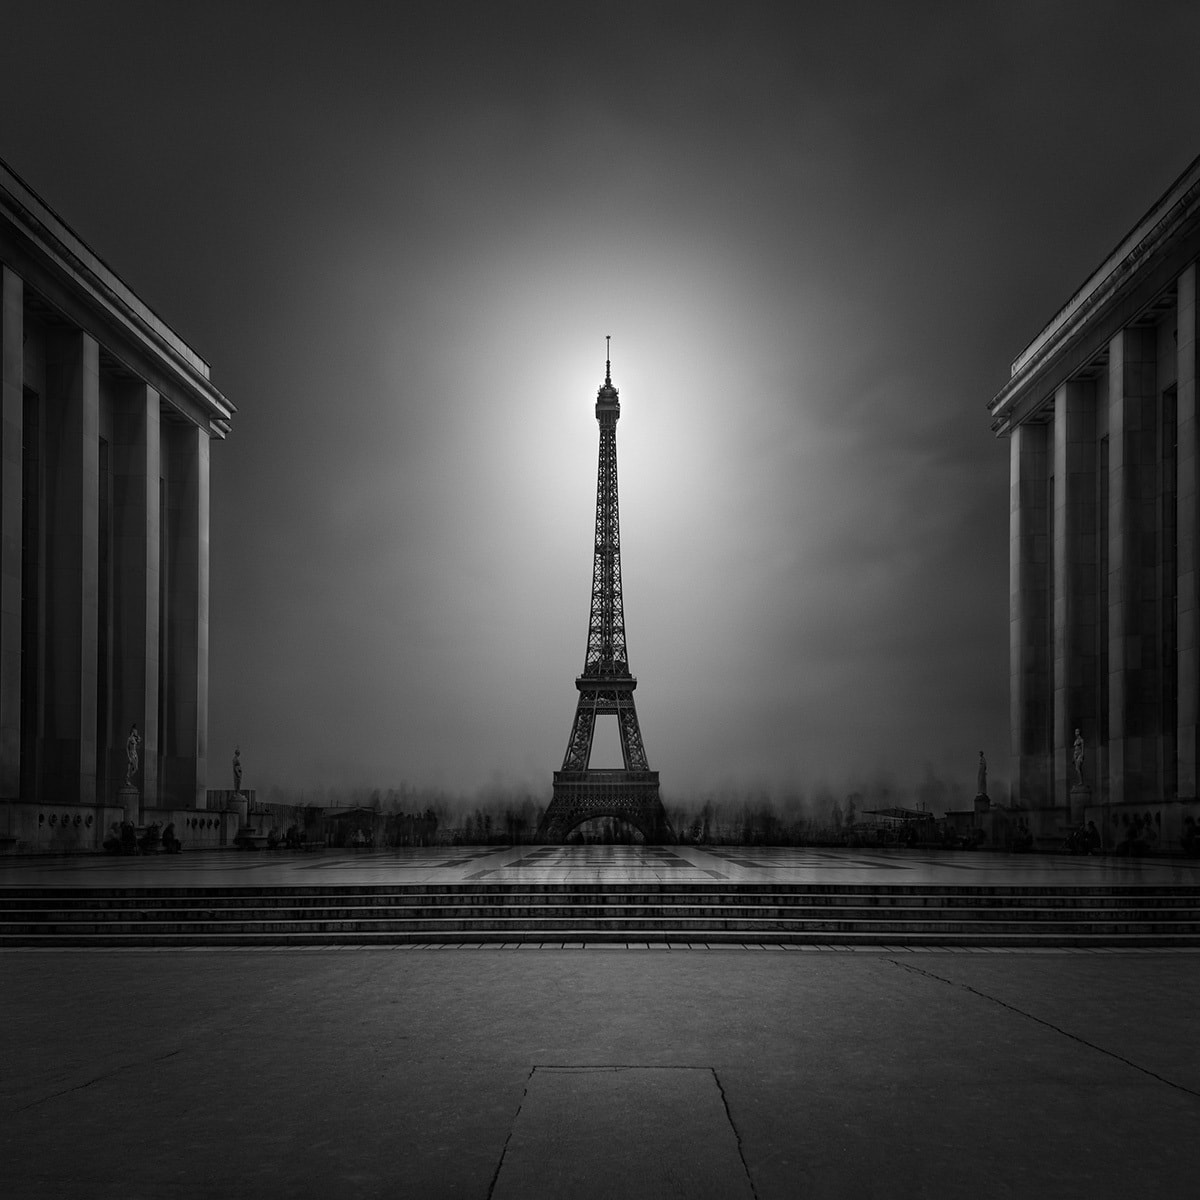 Enlightenment I - Eiffel Tower Trocadero © Julia Anna Gospodarou 2017 Extensive Long Exposure Photography Tutorial by Julia Anna Gospodarou